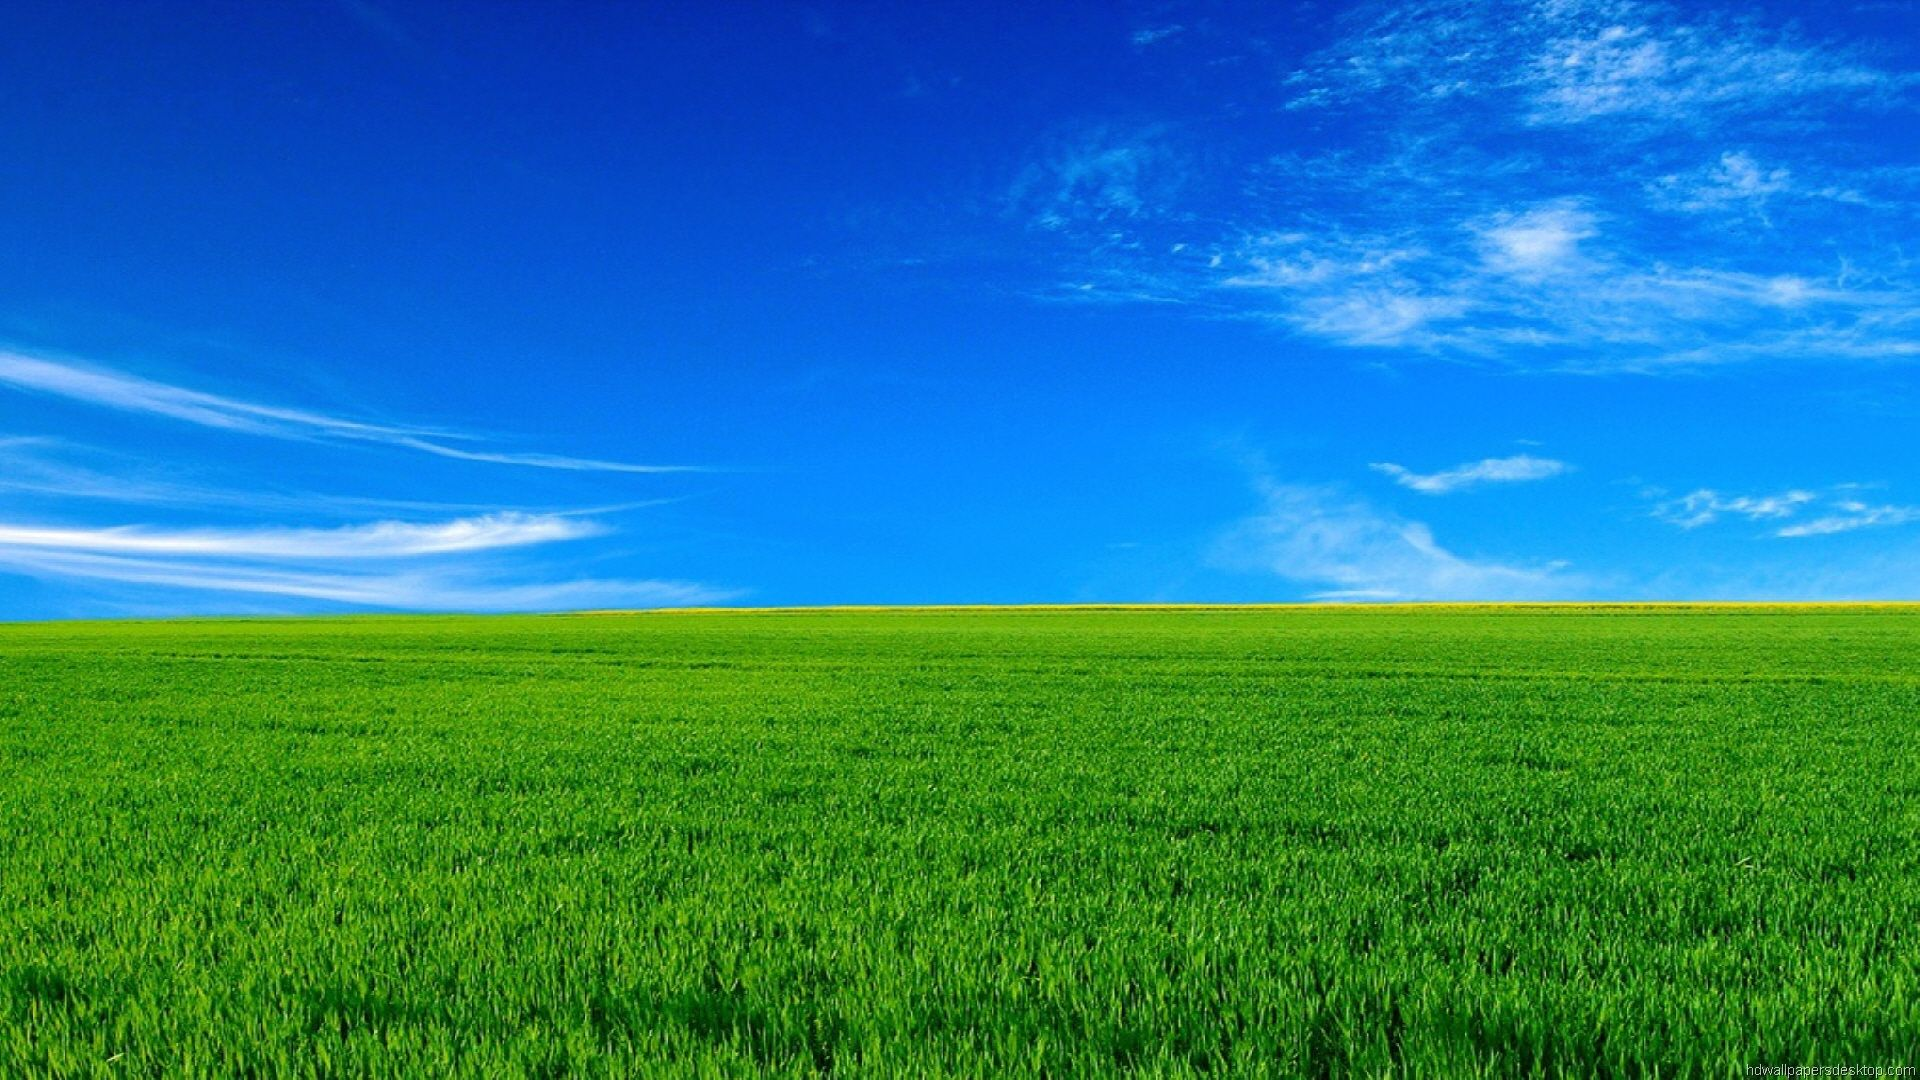 Green Grass Field Wallpapers HD Wallpapers Epic Car